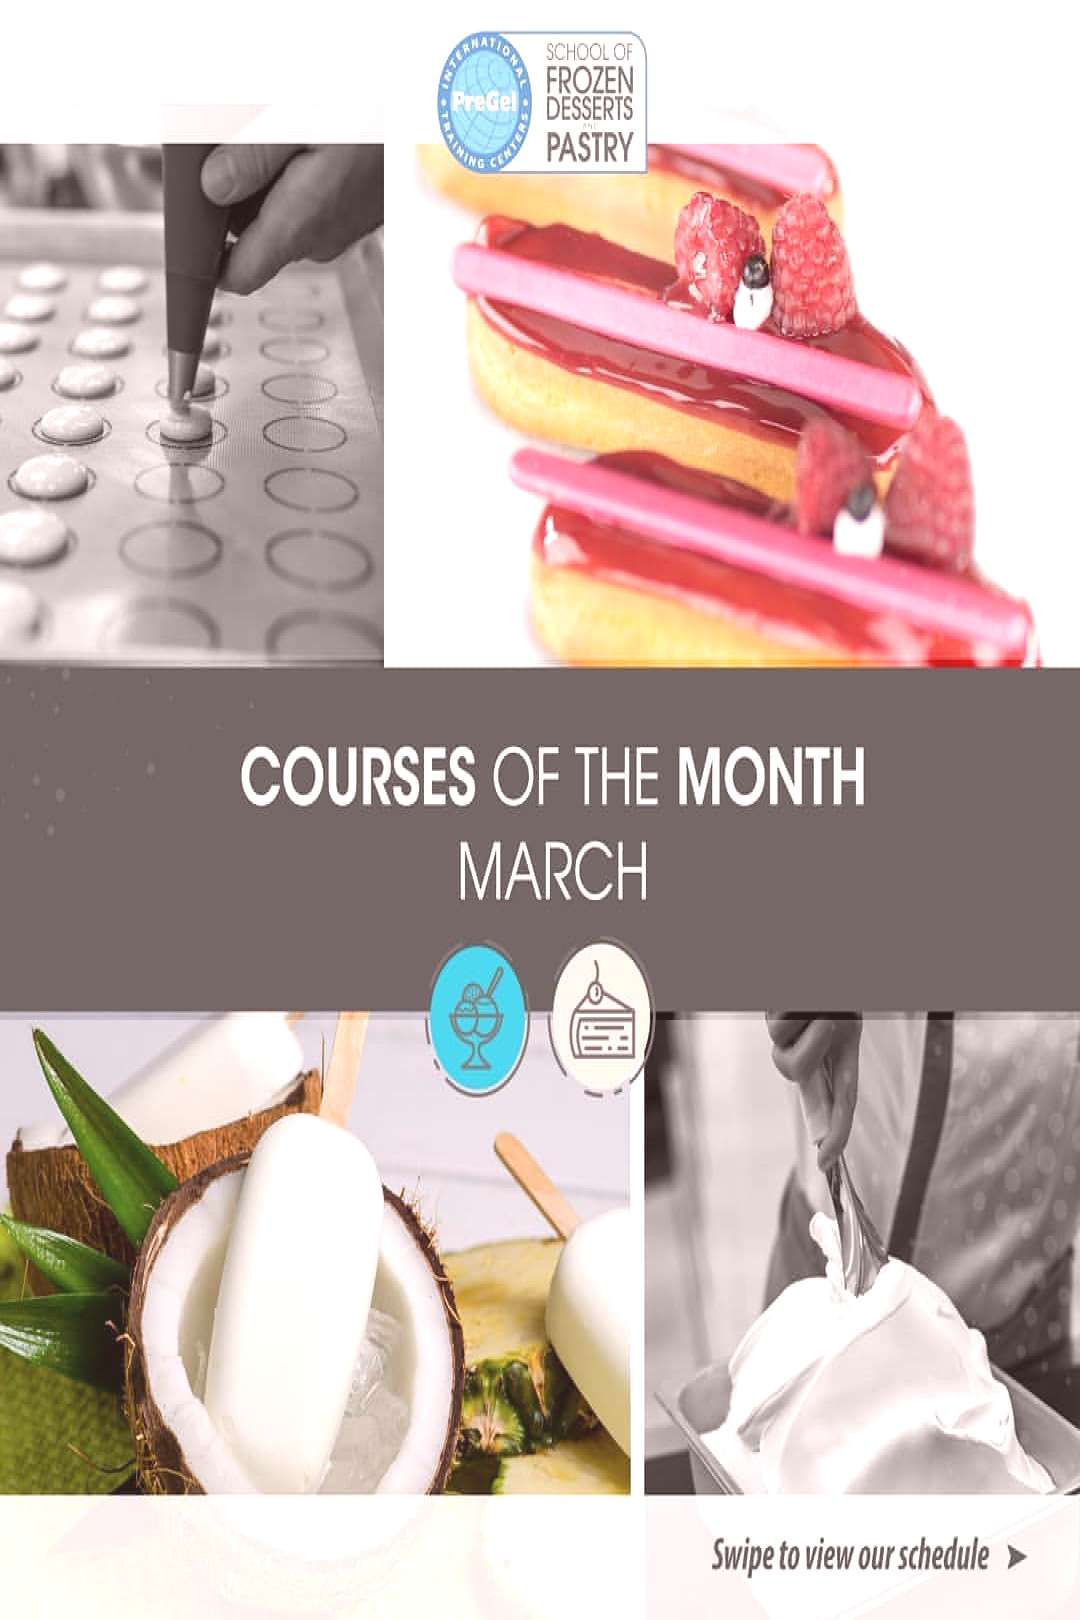 Please swipe to see all of our courses for the month of March! We